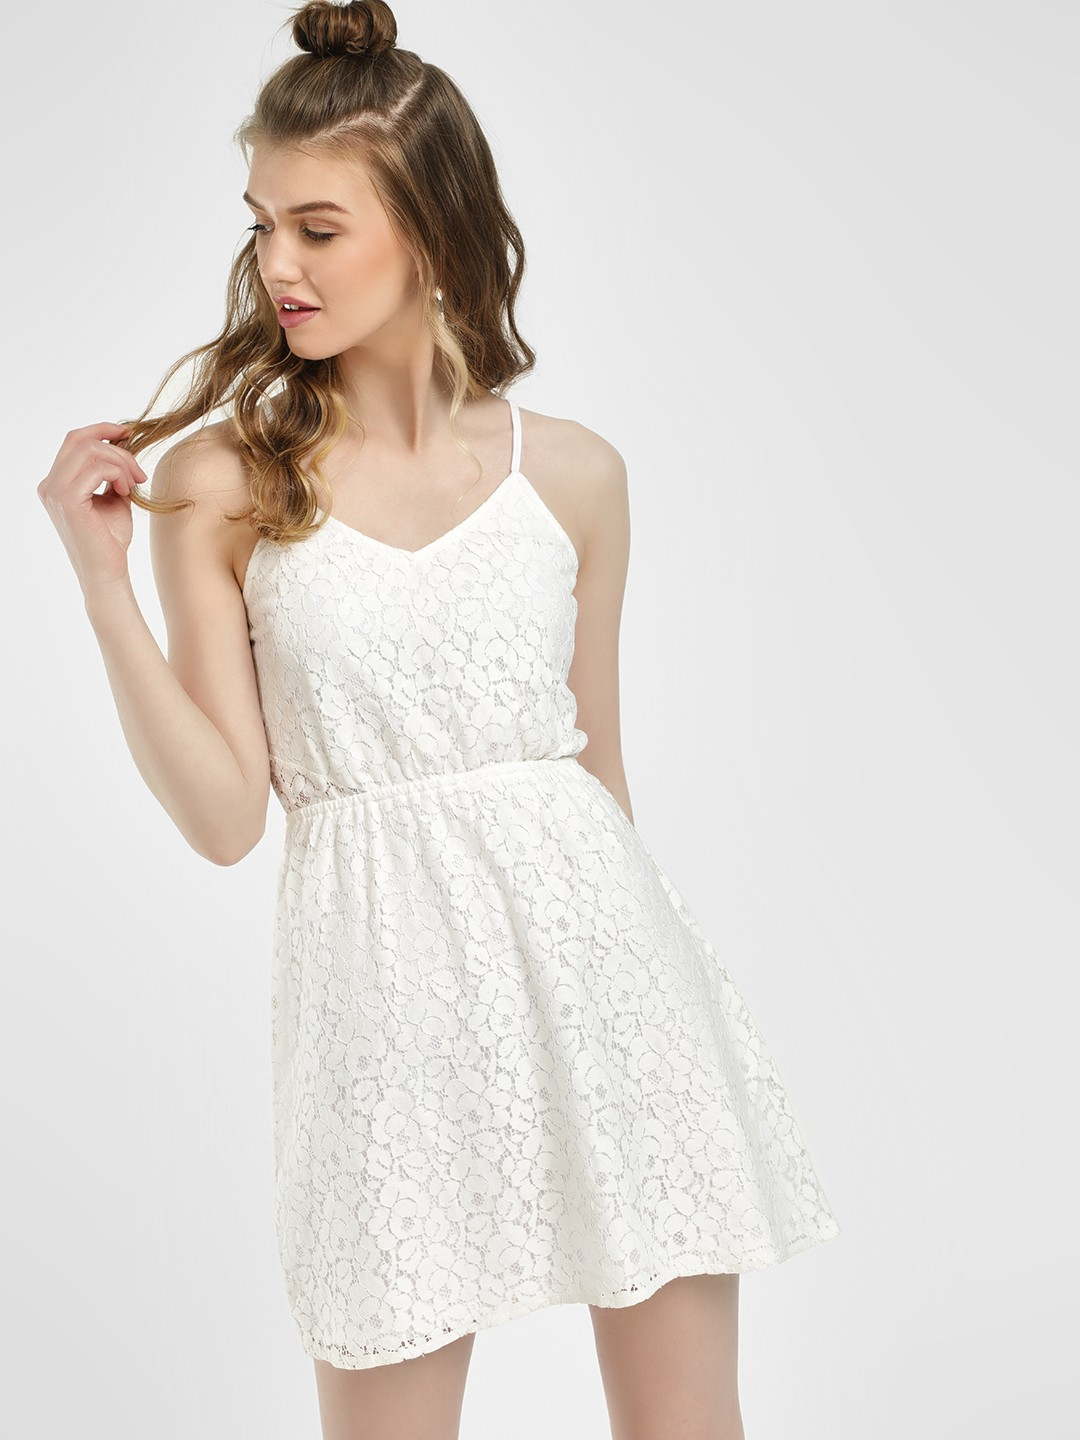 Sbuys White Floral Lace Skater Dress 1